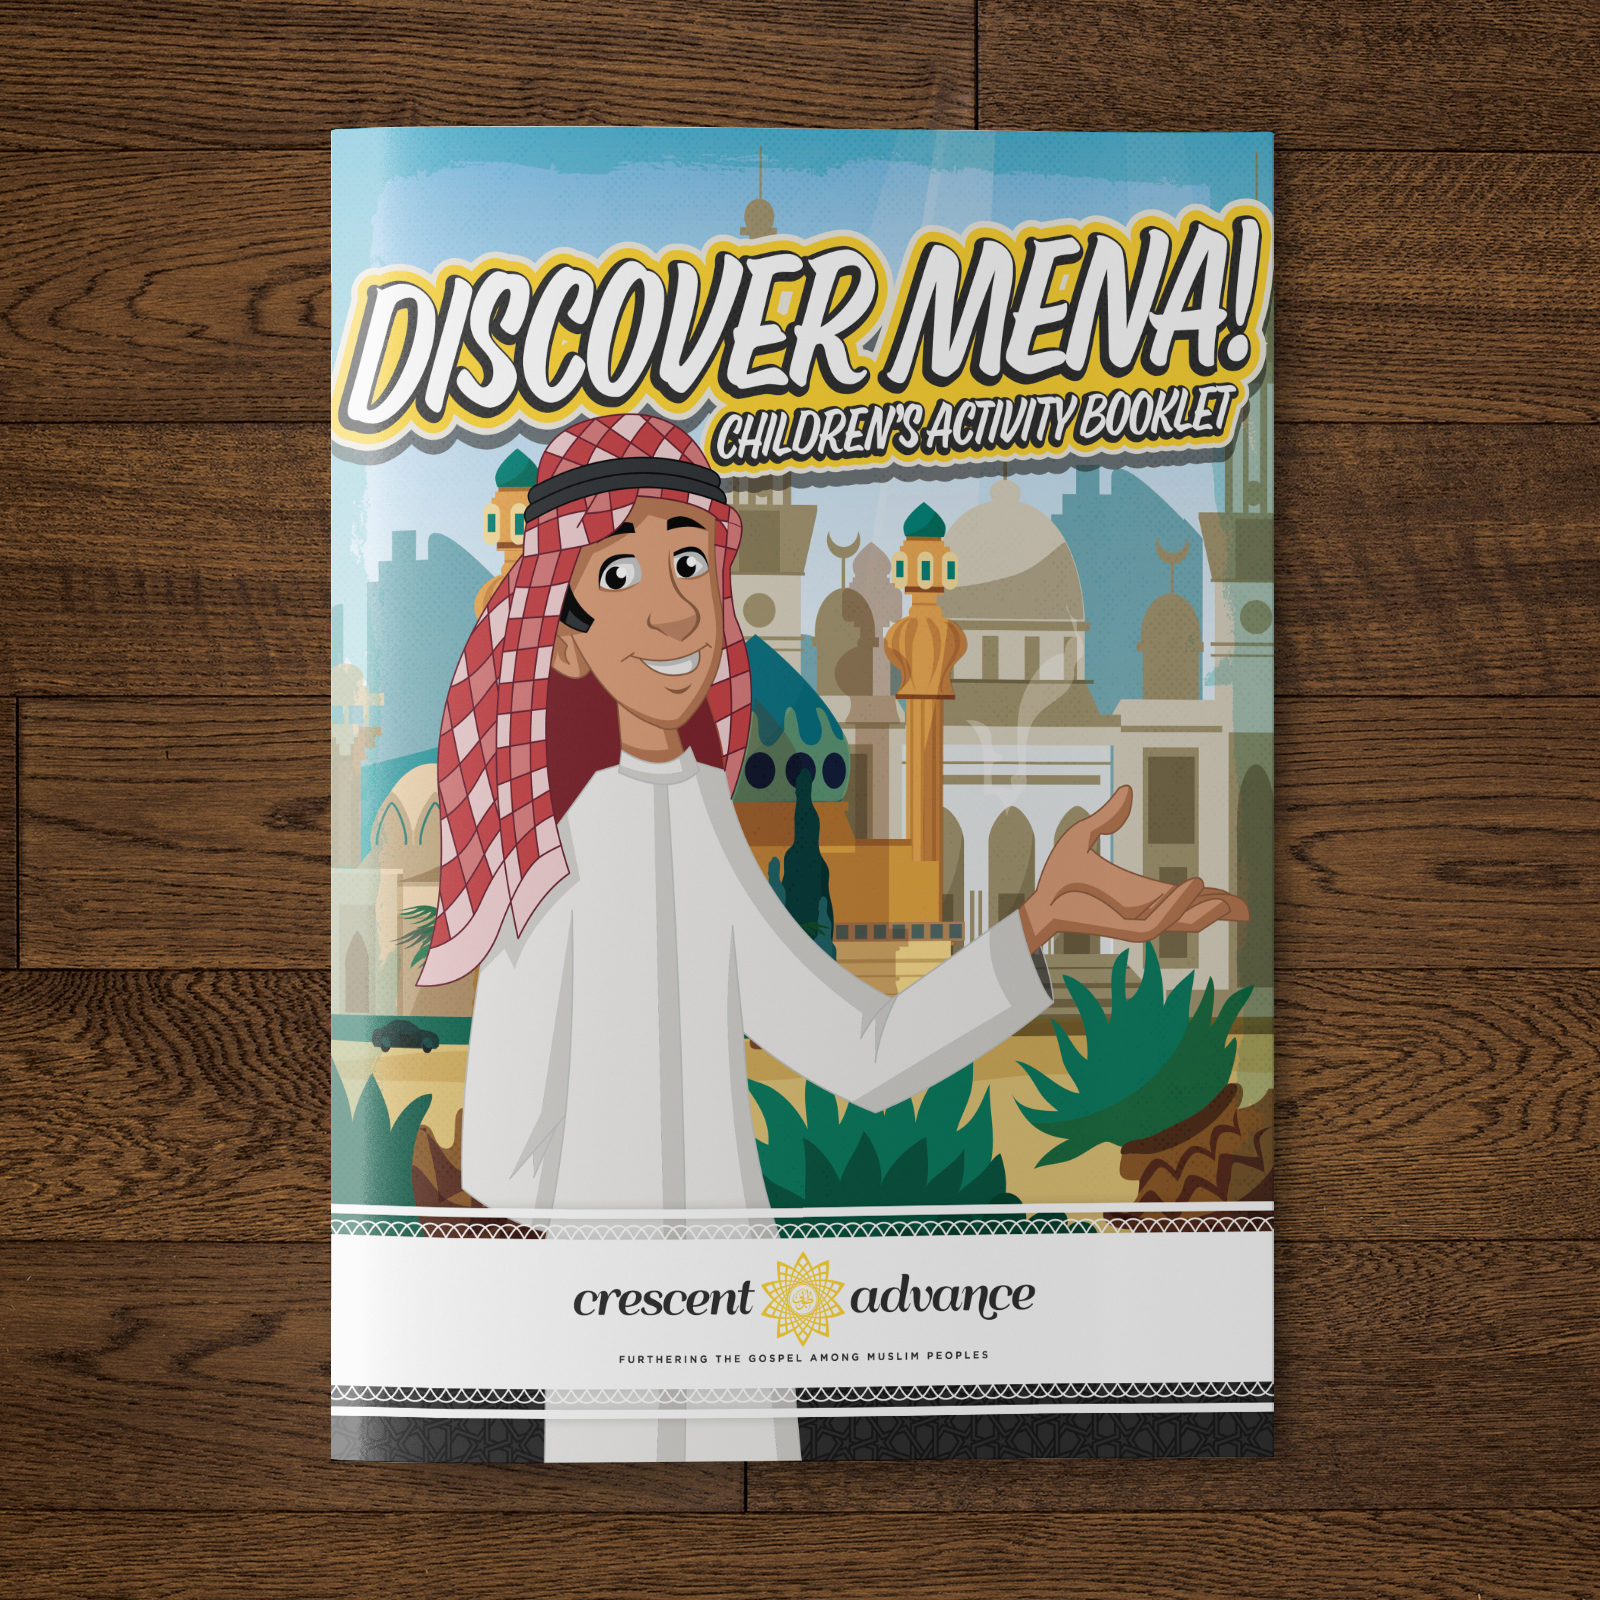 Children's Activity Booklet Mockup 03